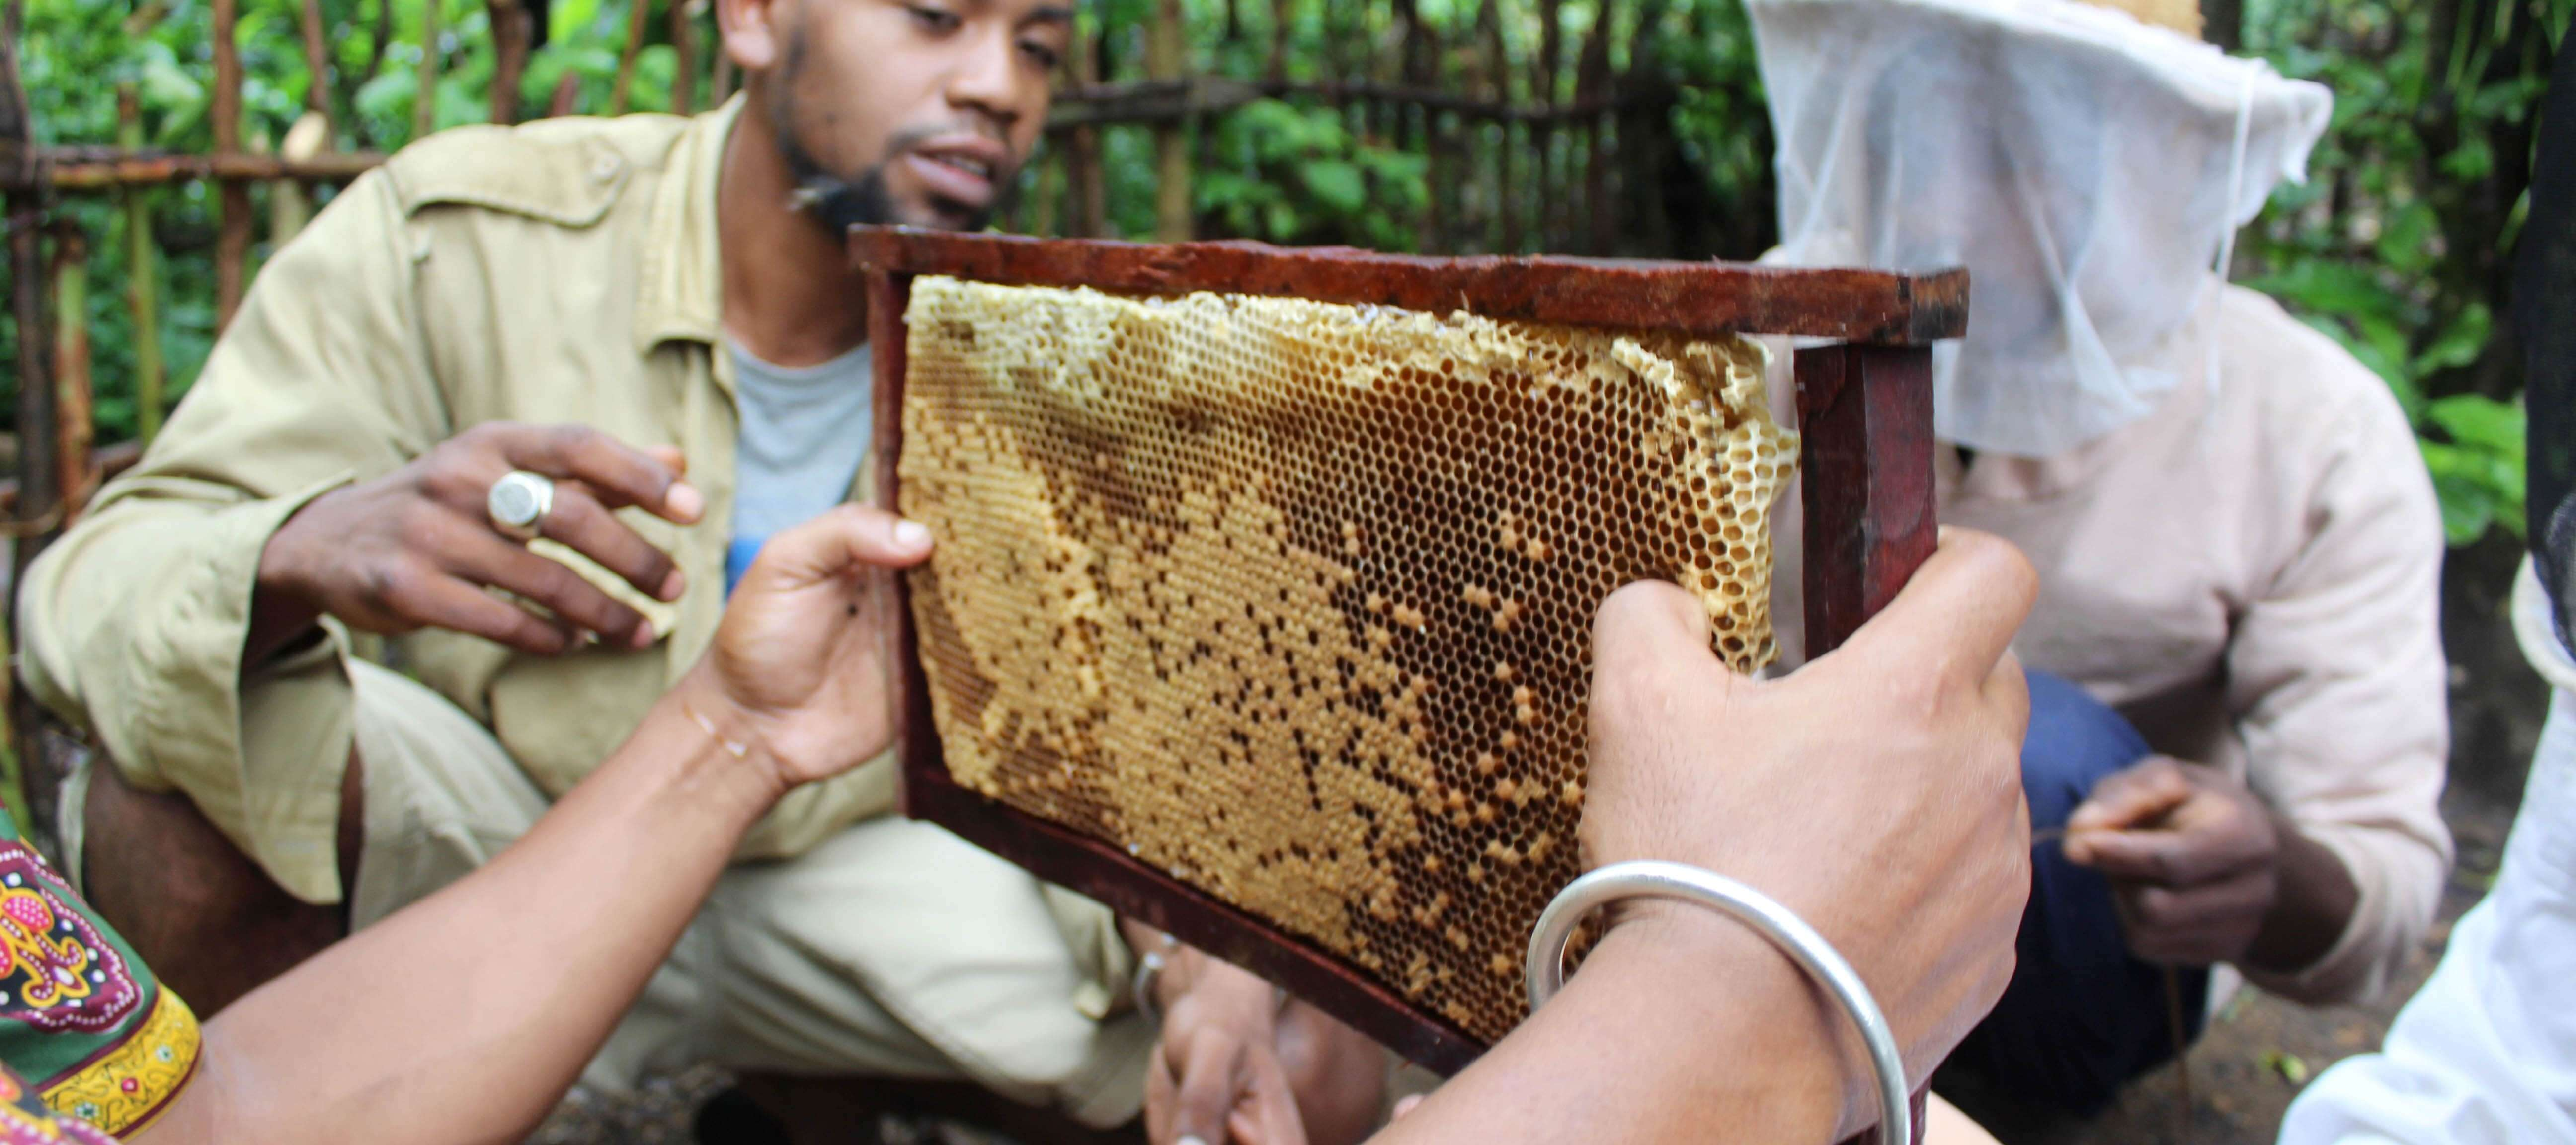 Beekeeping specialists demonstrate their techniques